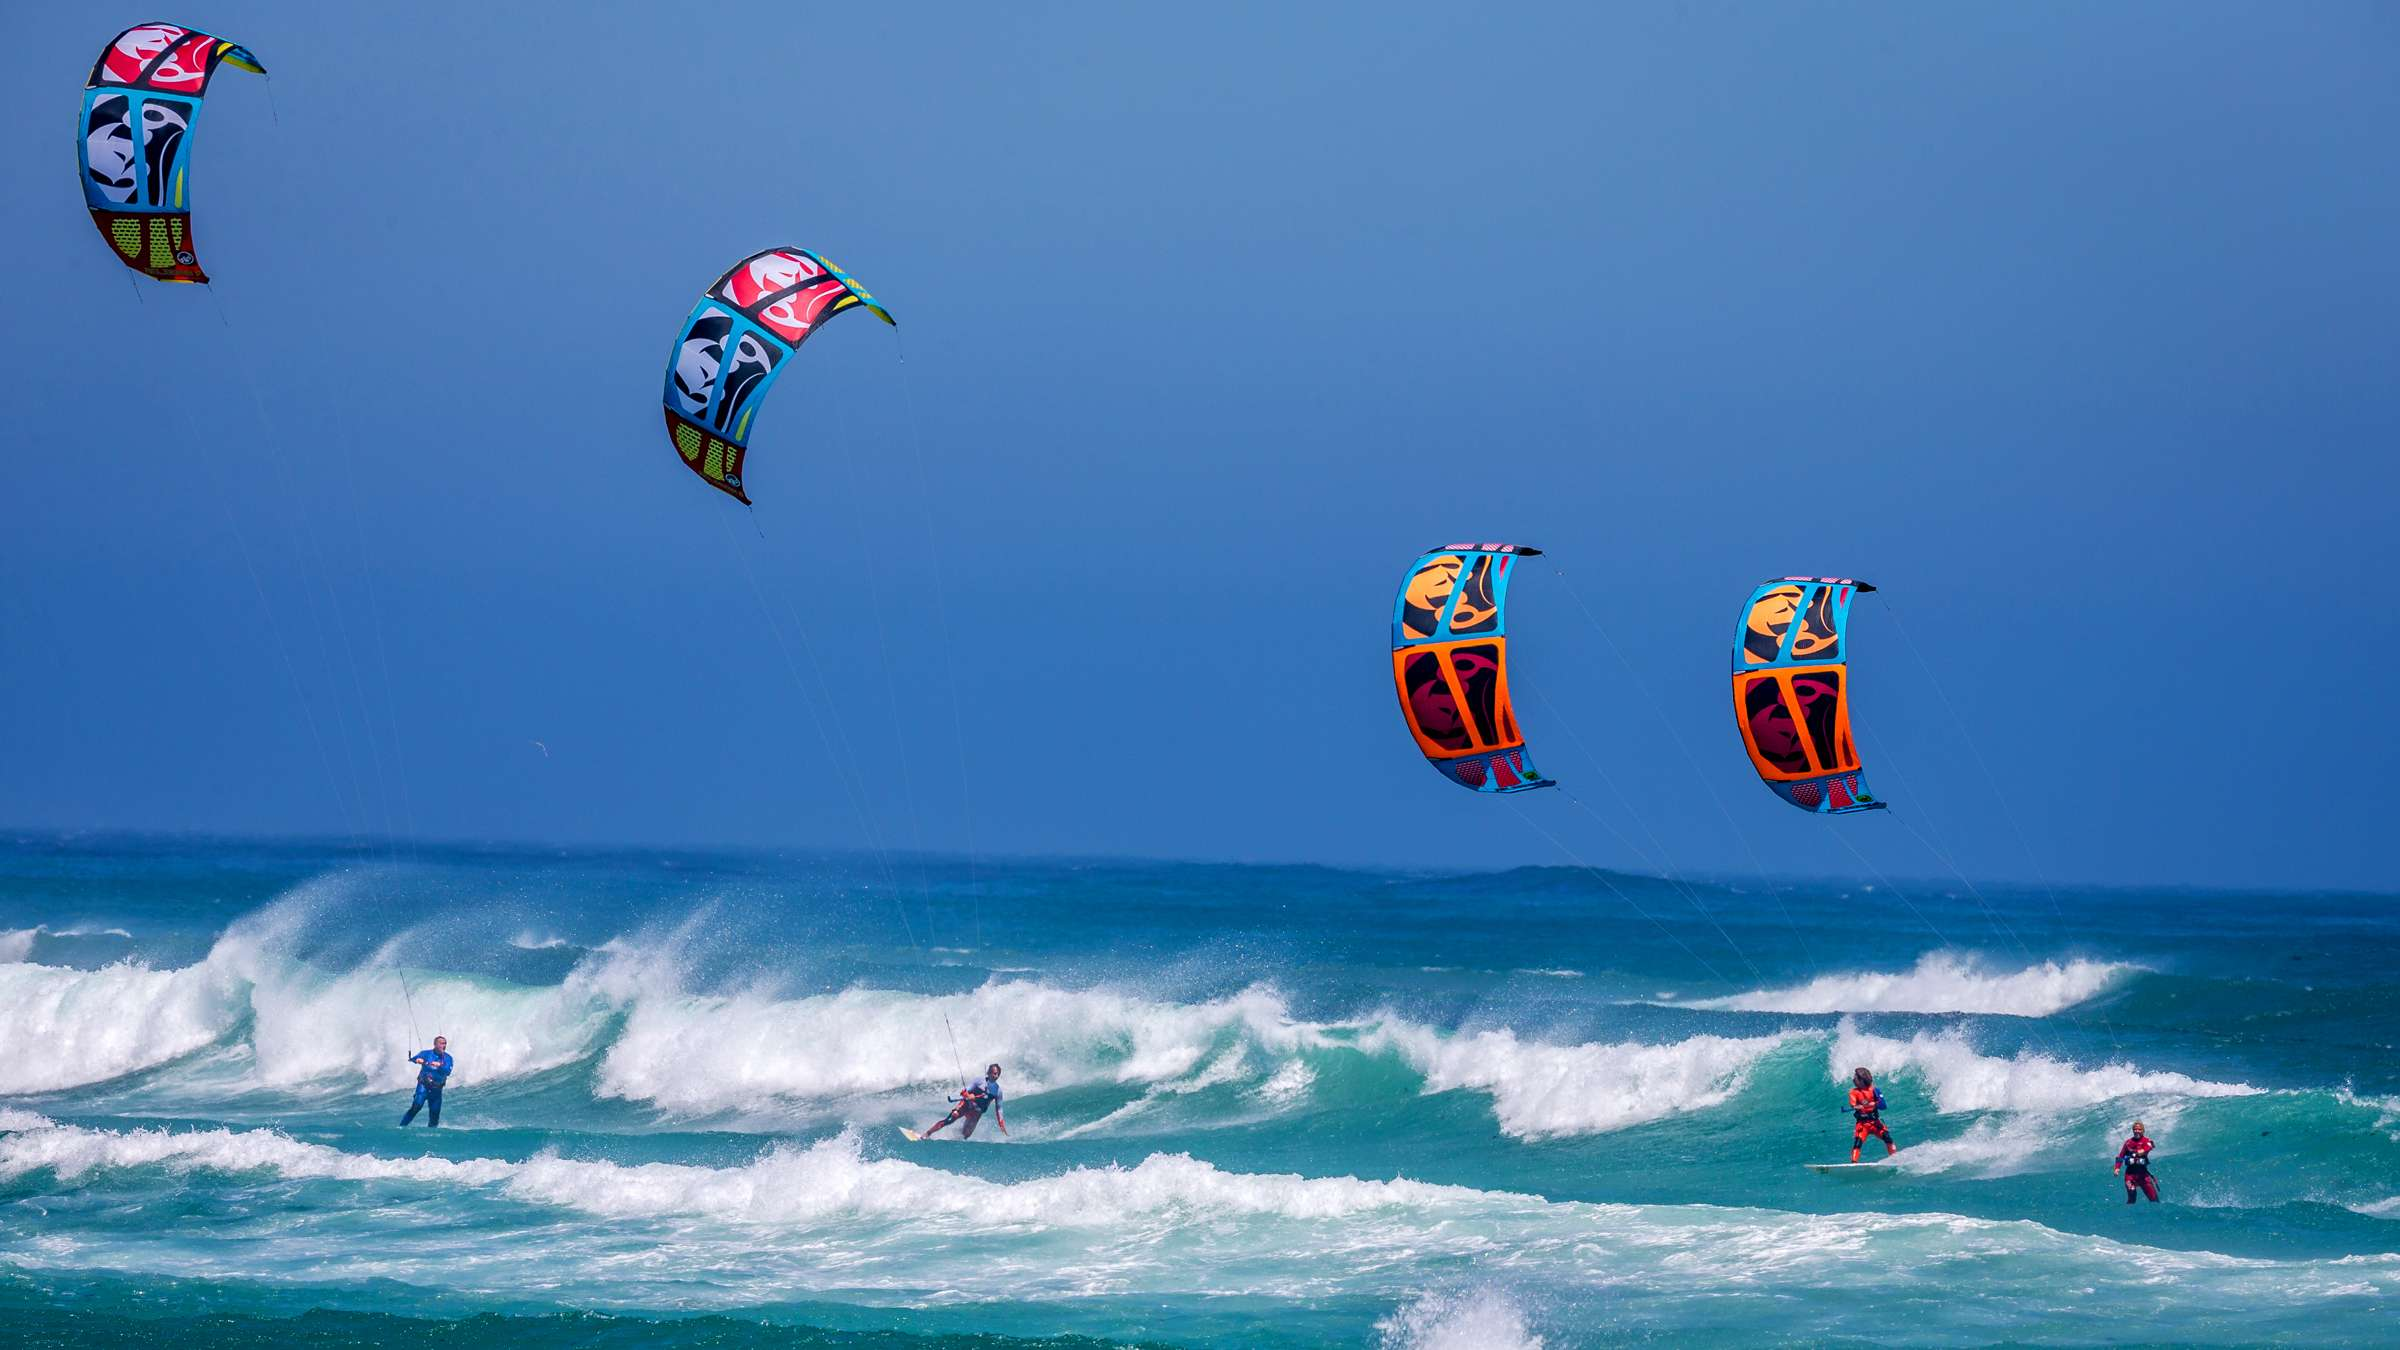 Kite Surfing Kiteboarding Adventure Sports HD Wallpapers 2400x1350